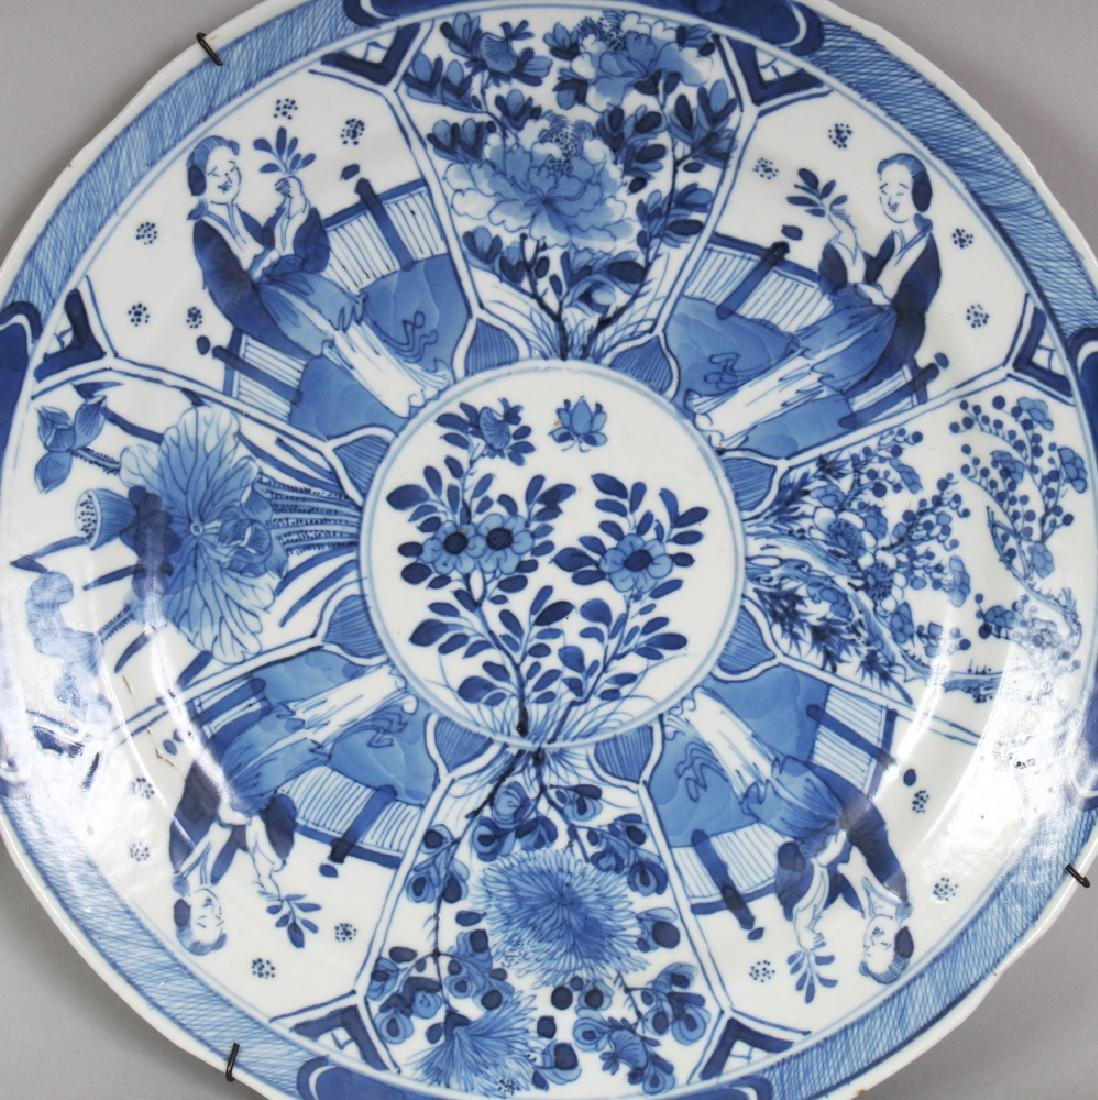 TWO 19TH CENTURY CHINESE BLUE & WHITE PORCELAIN PLATES, - 3